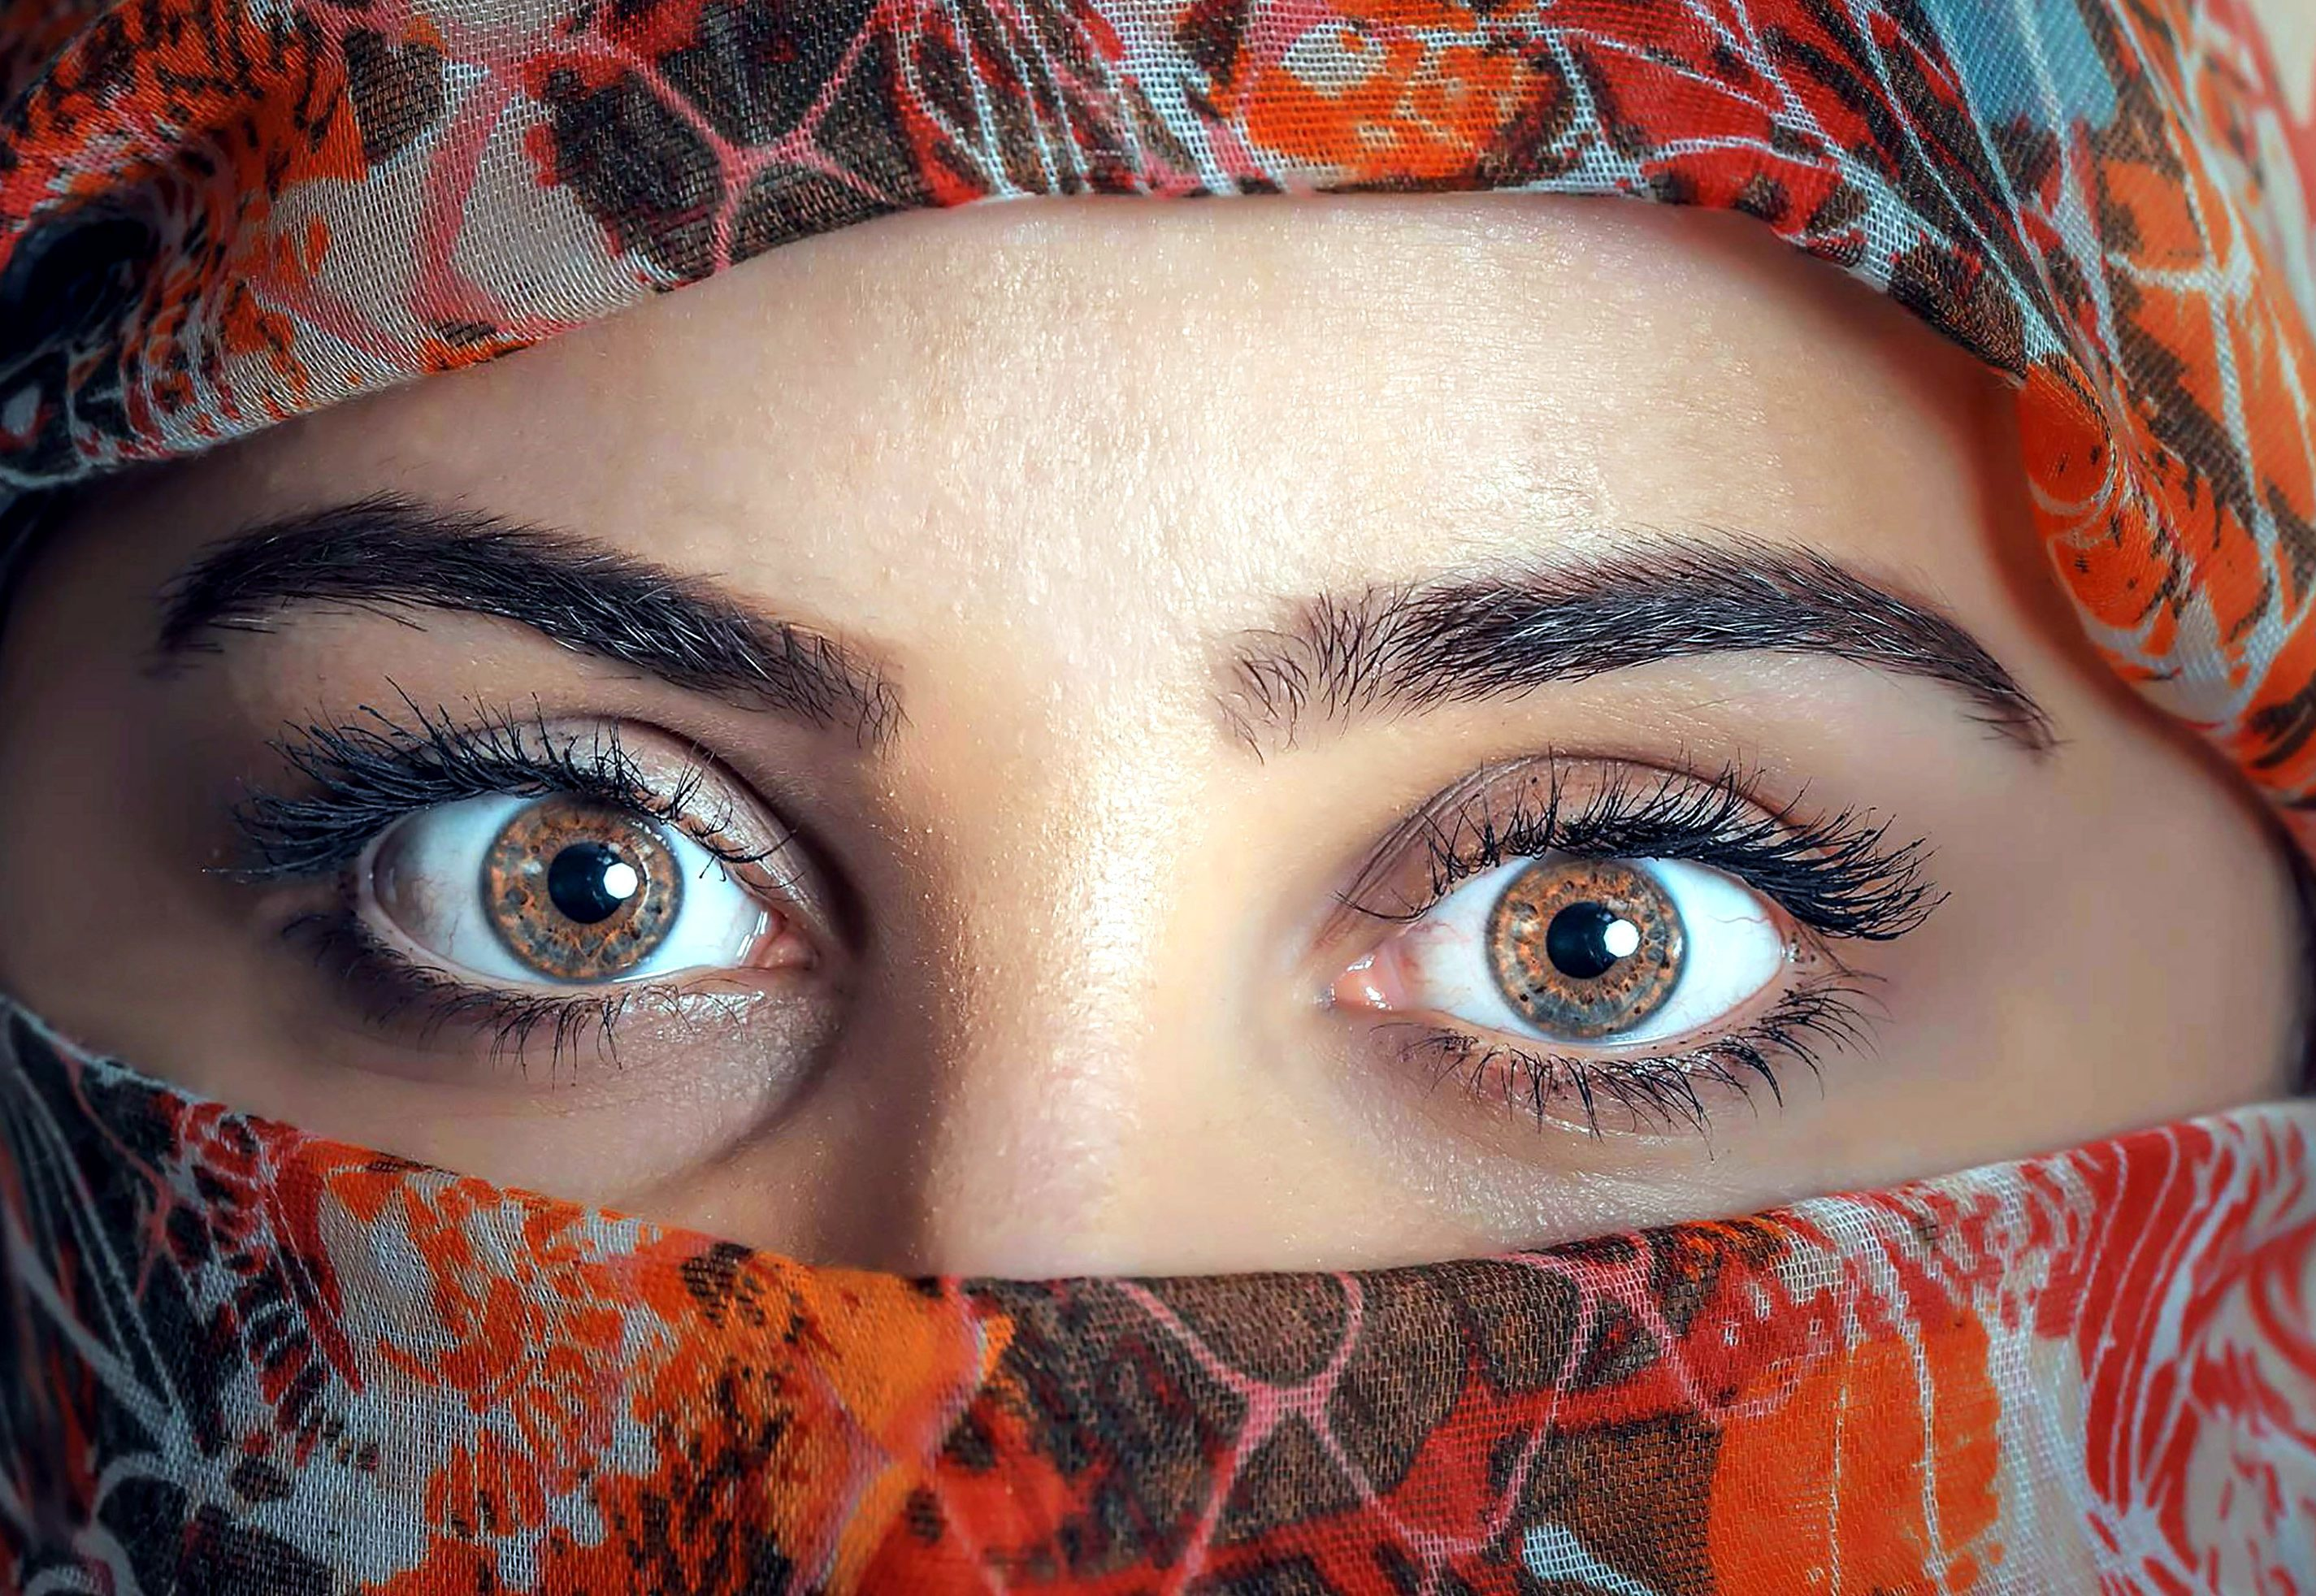 Smiling Face Girl Wallpaper India Free Picture Muslim Woman Pretty Girl Eyes Covered Face